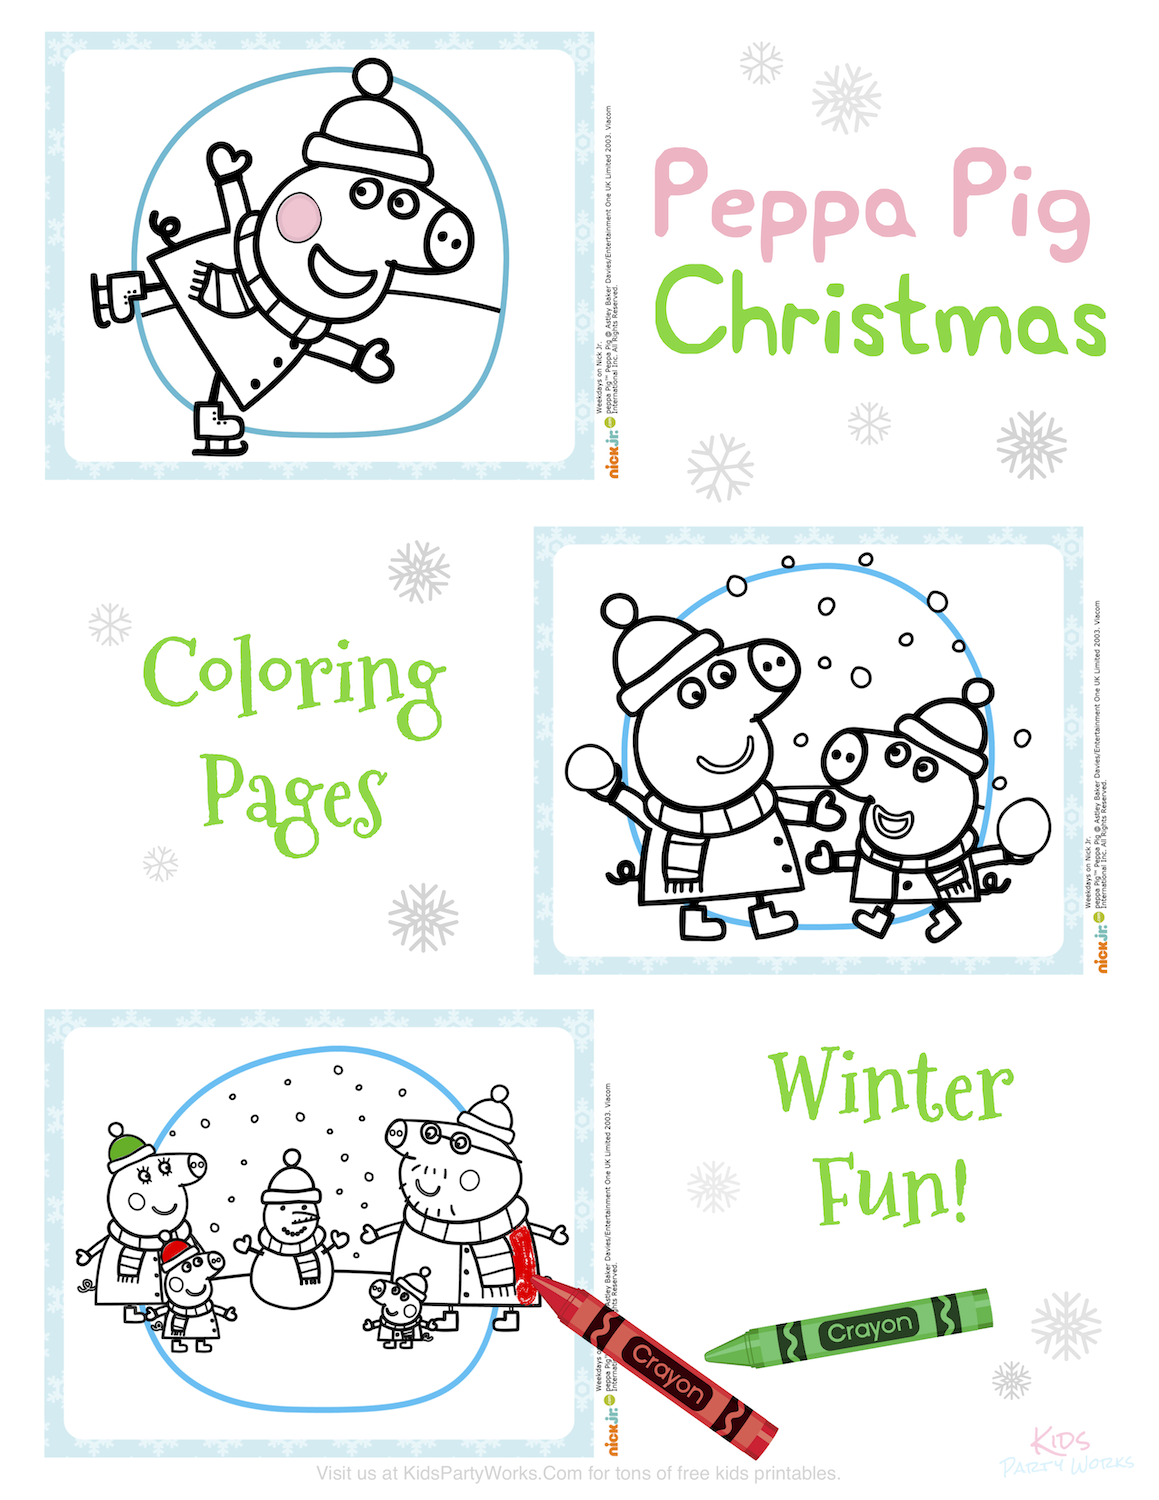 Peppa Pig Christmas Coloring Pages - Christmas Time is ...